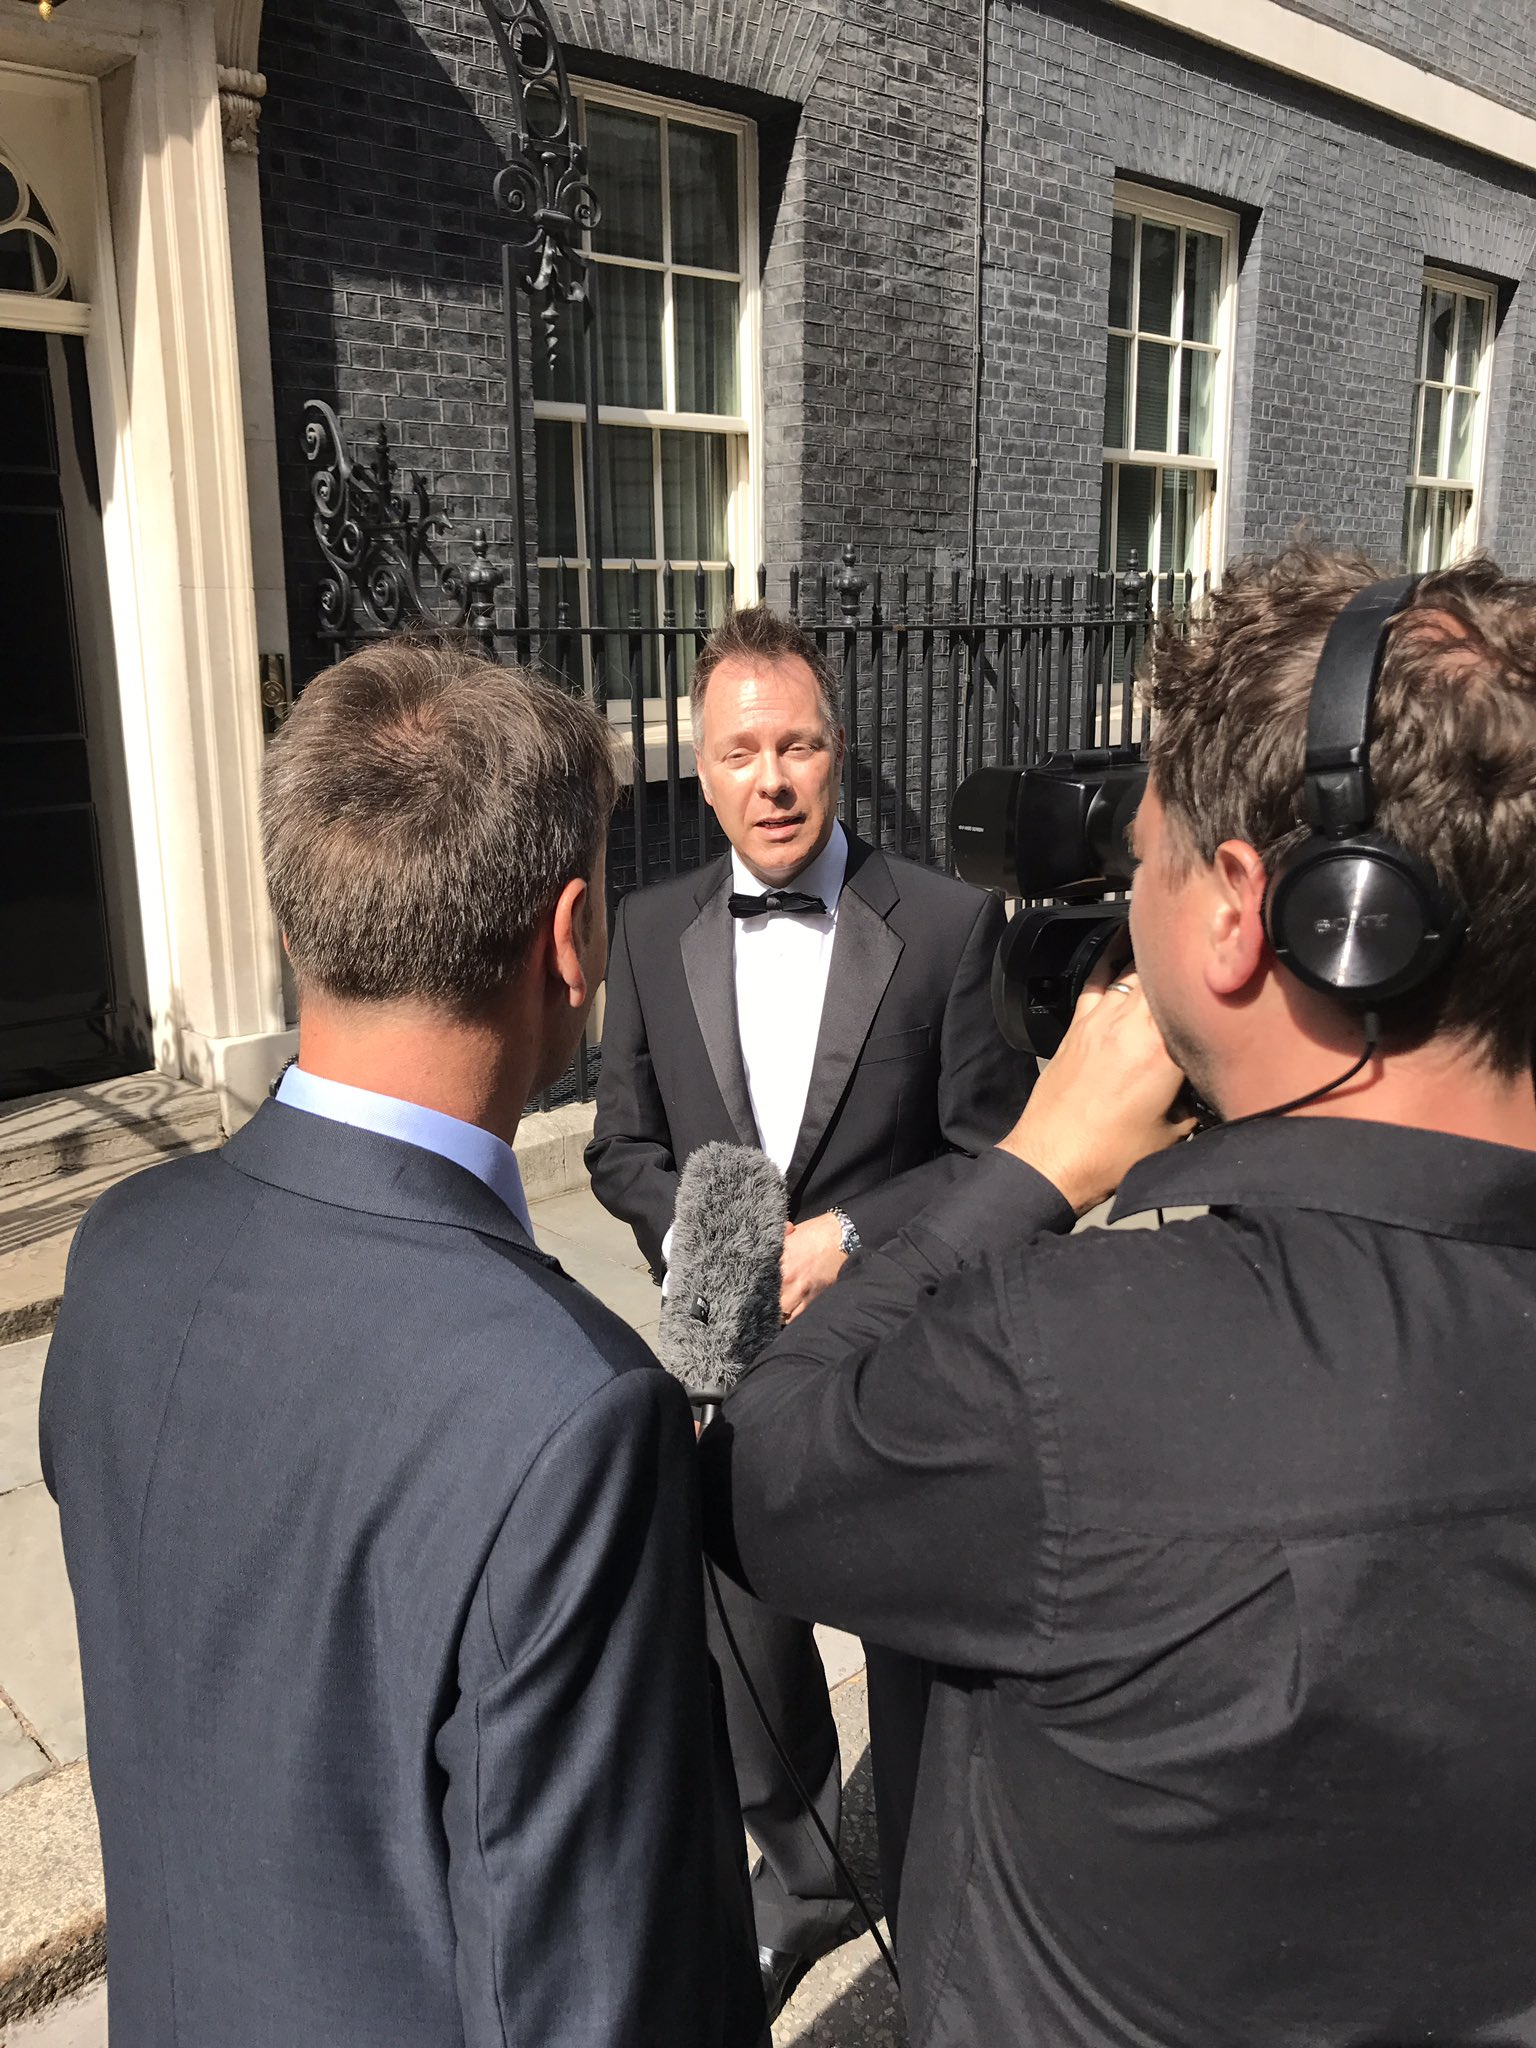 Stephen Mann from @PoliceMutual recognising the brave acts we honour with the #PoliceBravery awards https://t.co/fTIUWLoApo